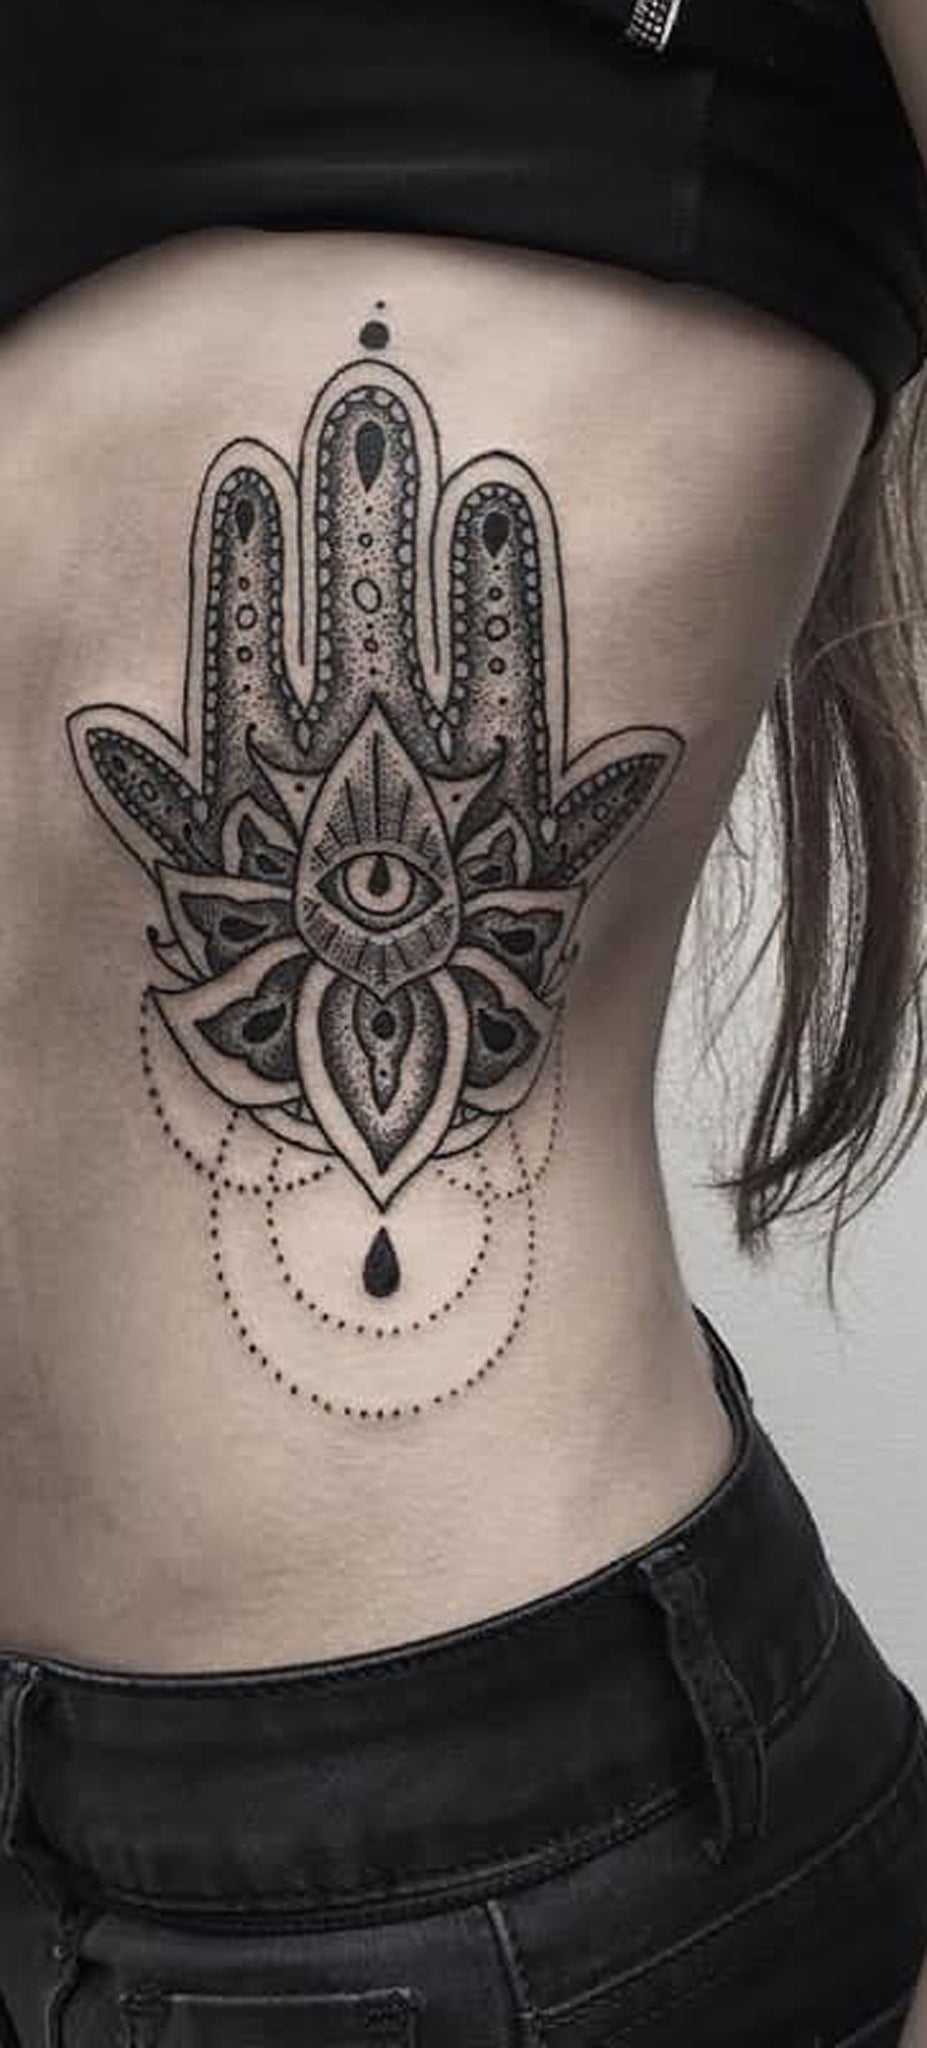 Hamsa Hand Rib Tattoo Ideas for Women - Evil Eve Hand Chandelier Lace Black Side Tatt -  ideas tribales tatuaje mano costilla para mujeres - www.MyBodiArt.com